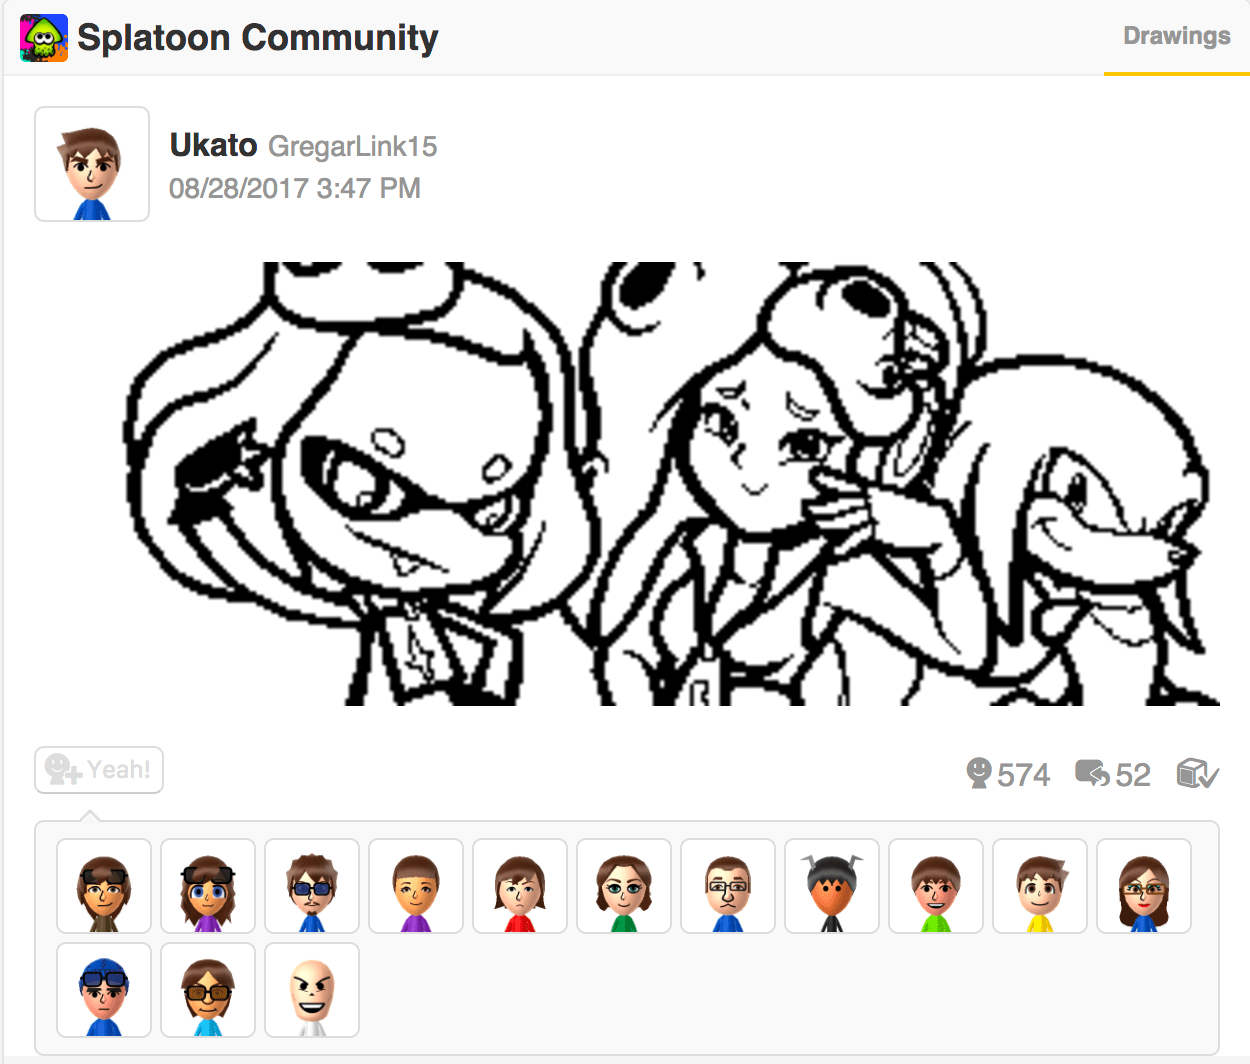 Nintendo S Miiverse May Be Dying But An Archiver Is